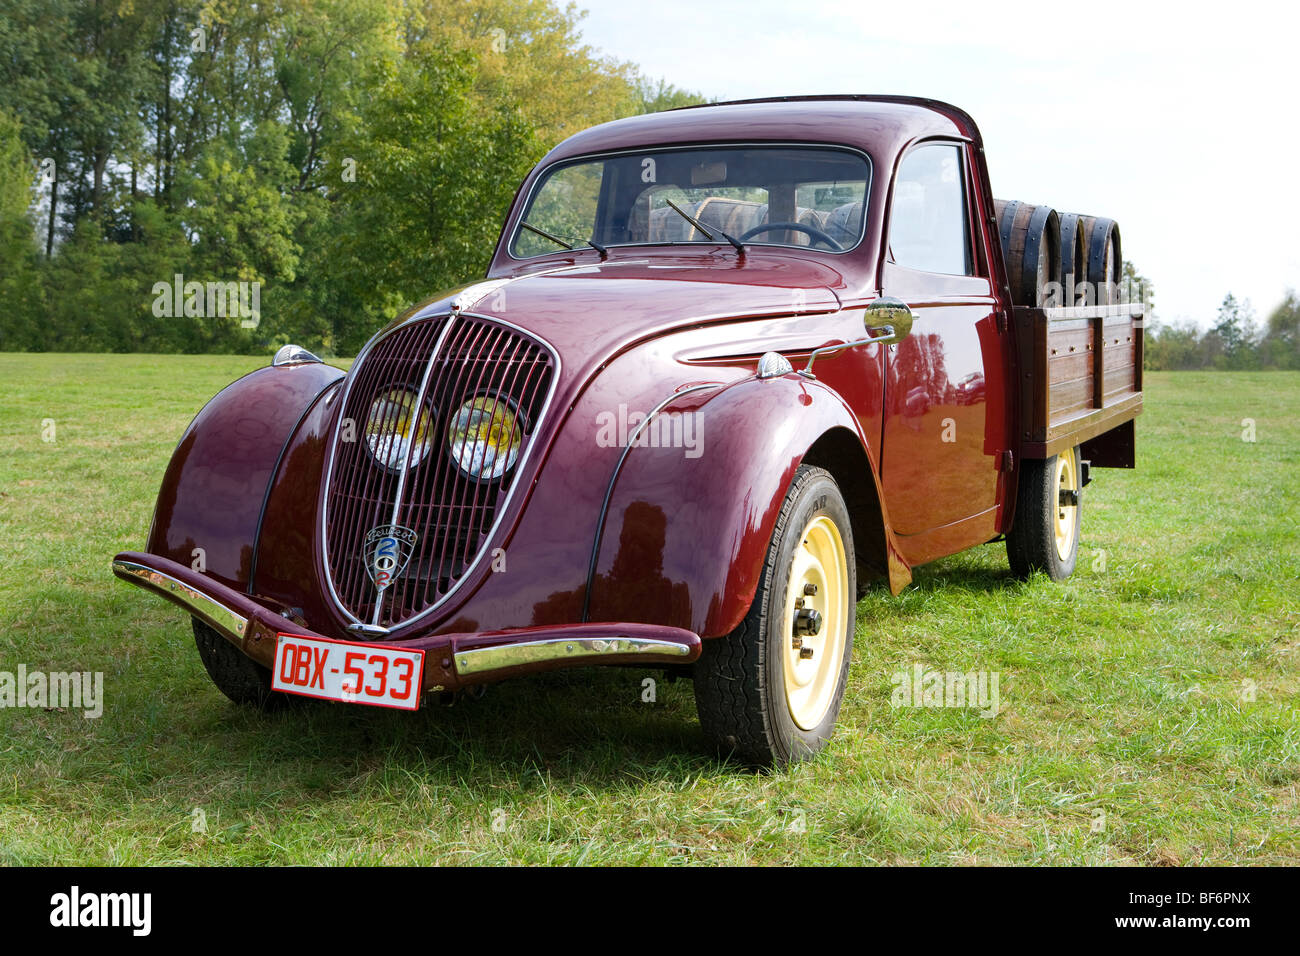 peugeot 202 pick up fifties veteran car loaded with barrique wine stock photo 26579782 alamy. Black Bedroom Furniture Sets. Home Design Ideas